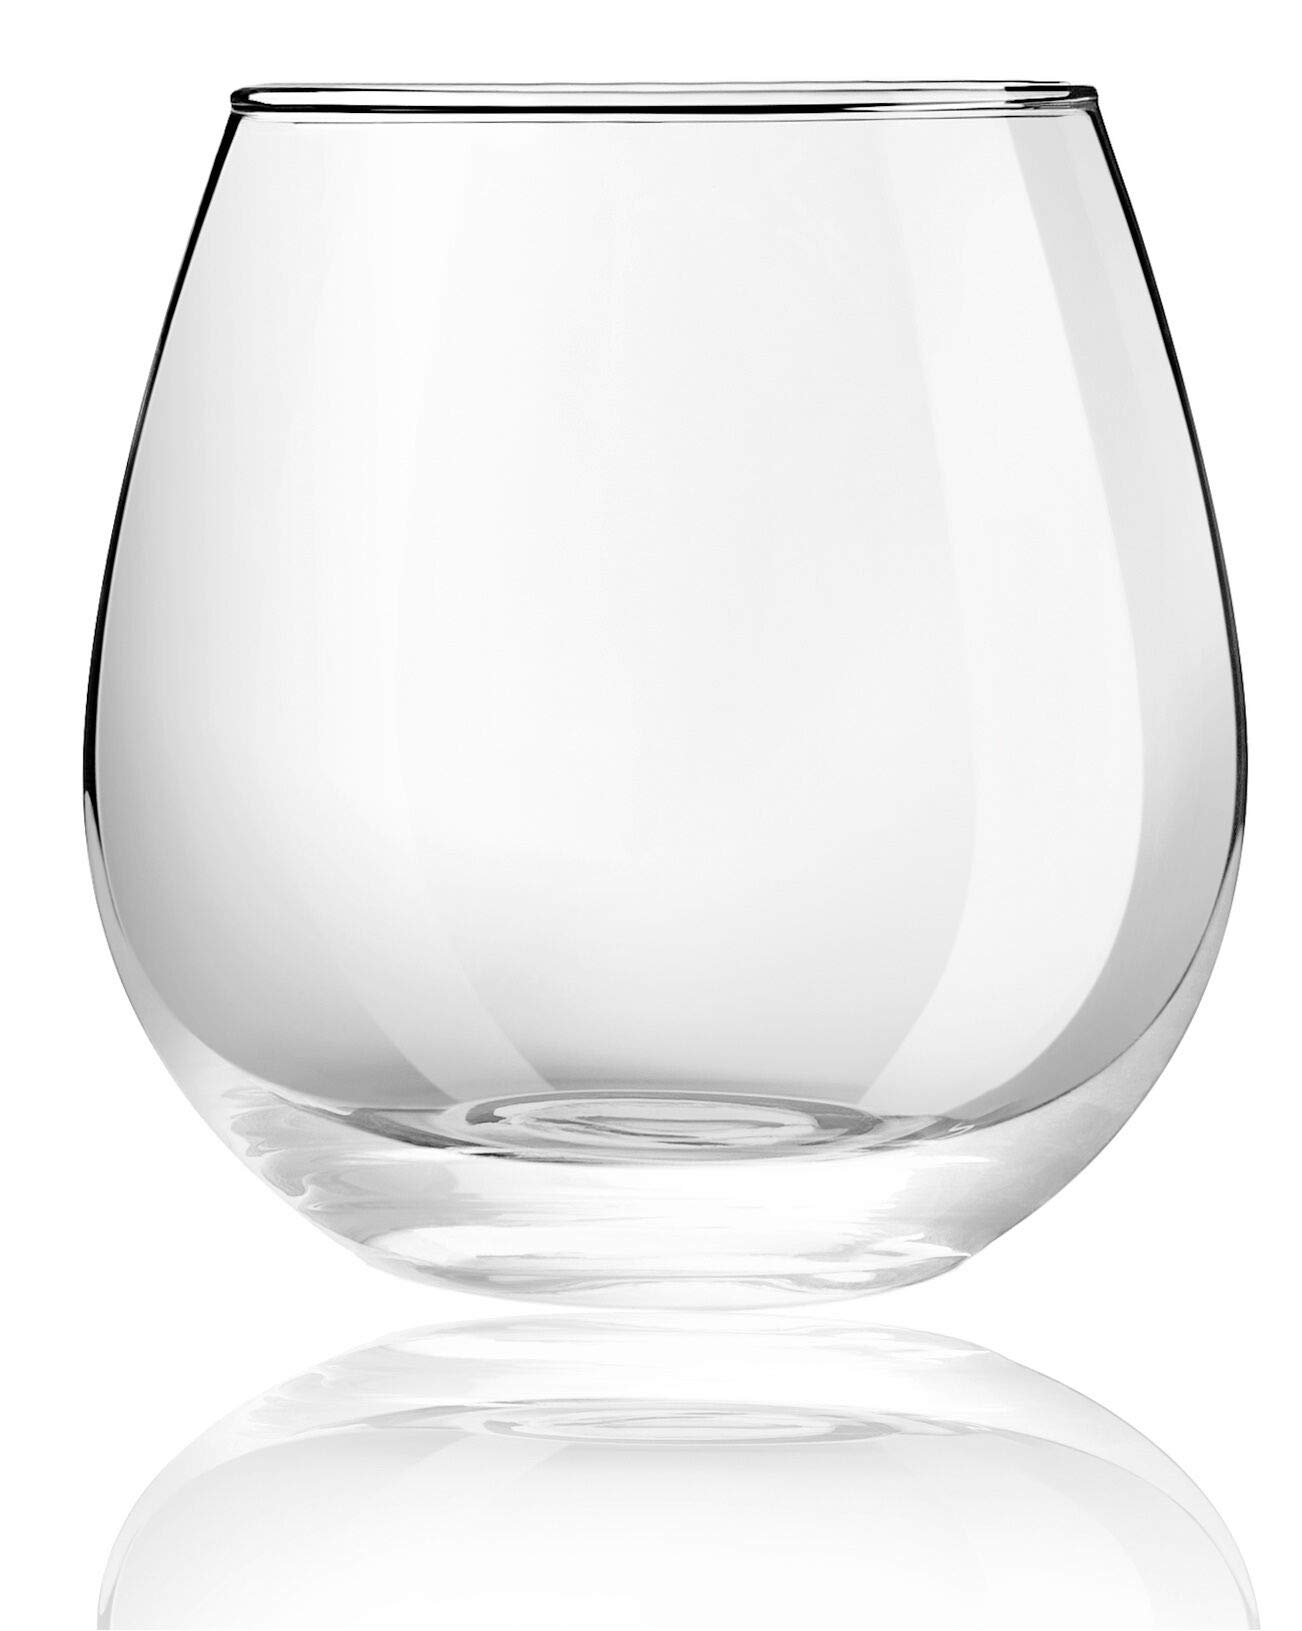 JoyJolt Spirits Stemless Wine Glasses 15 Ounce, Set of 4 Great For White Or Red Wine Mother's Day Wine Gifts Wines Glass Sets by JoyJolt (Image #4)